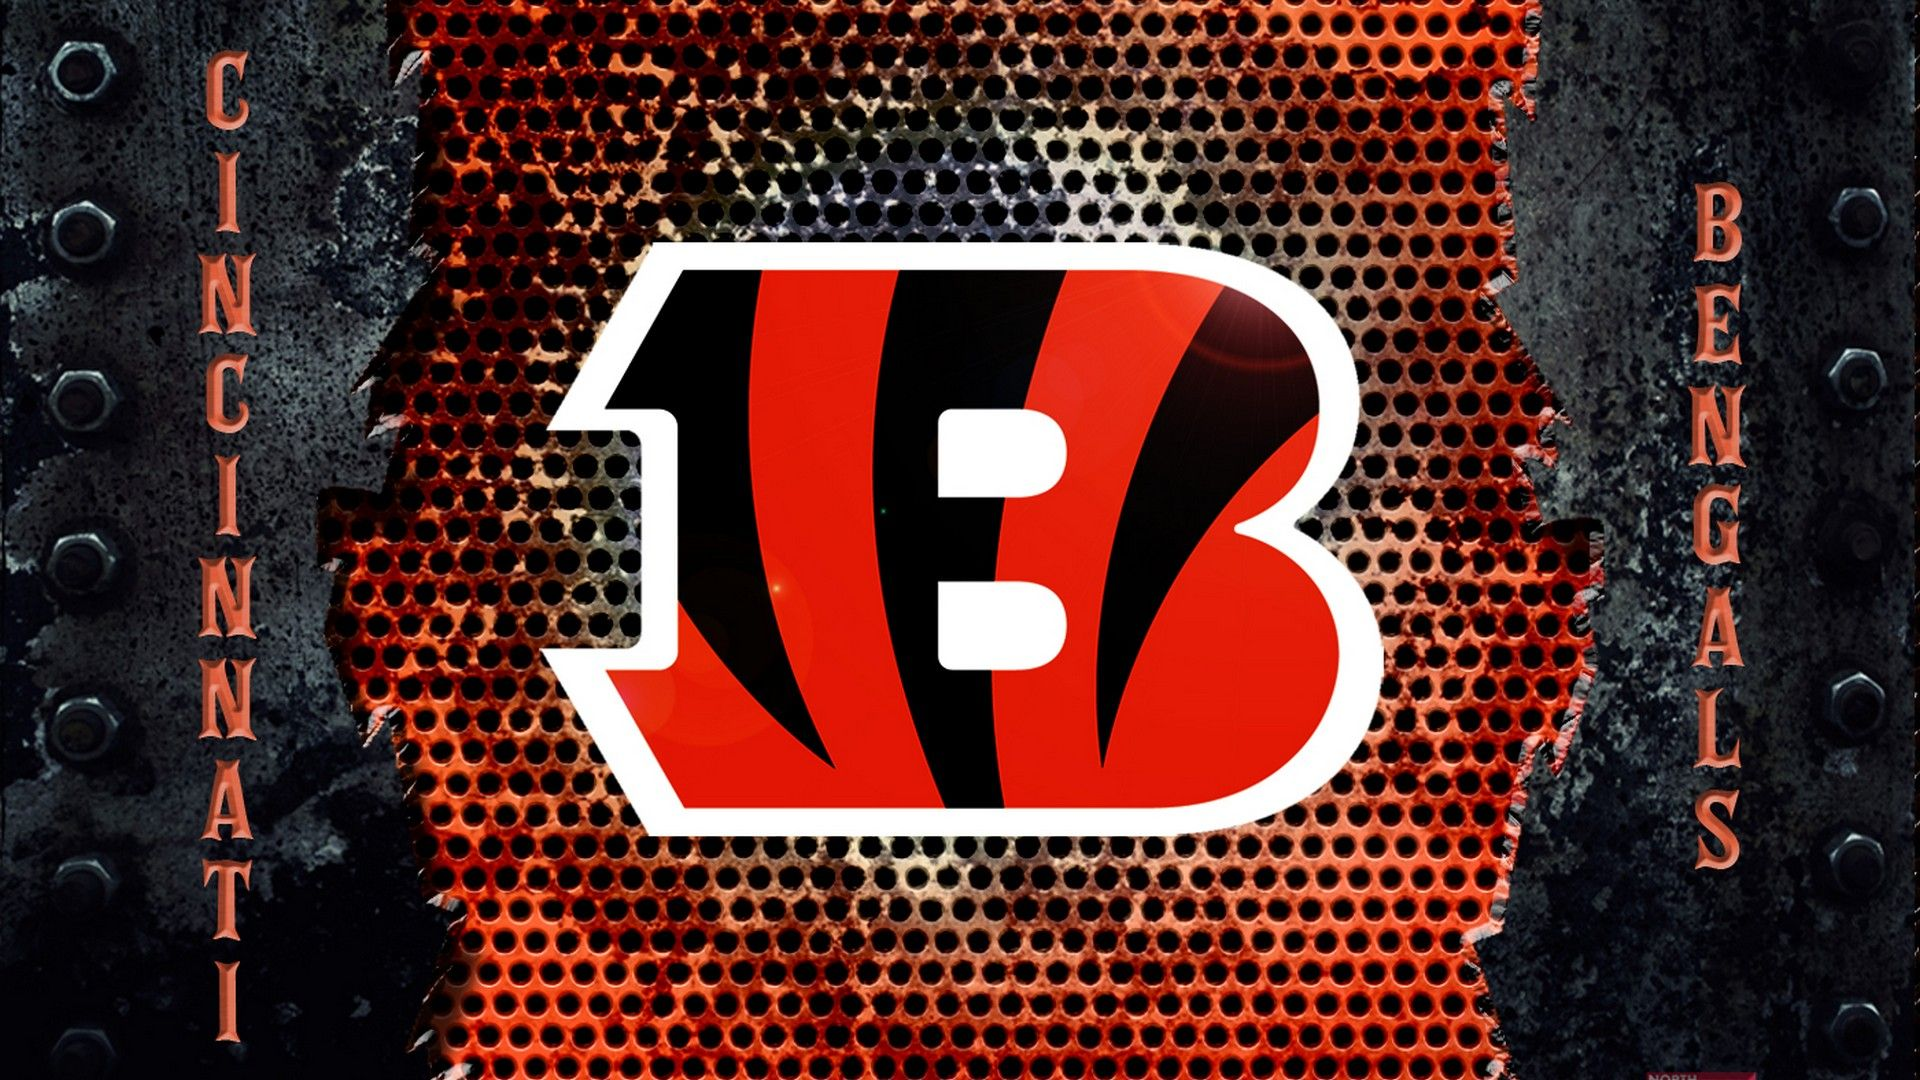 cincinnati bengals wallpaper hd - 2018 | cincinnati, football